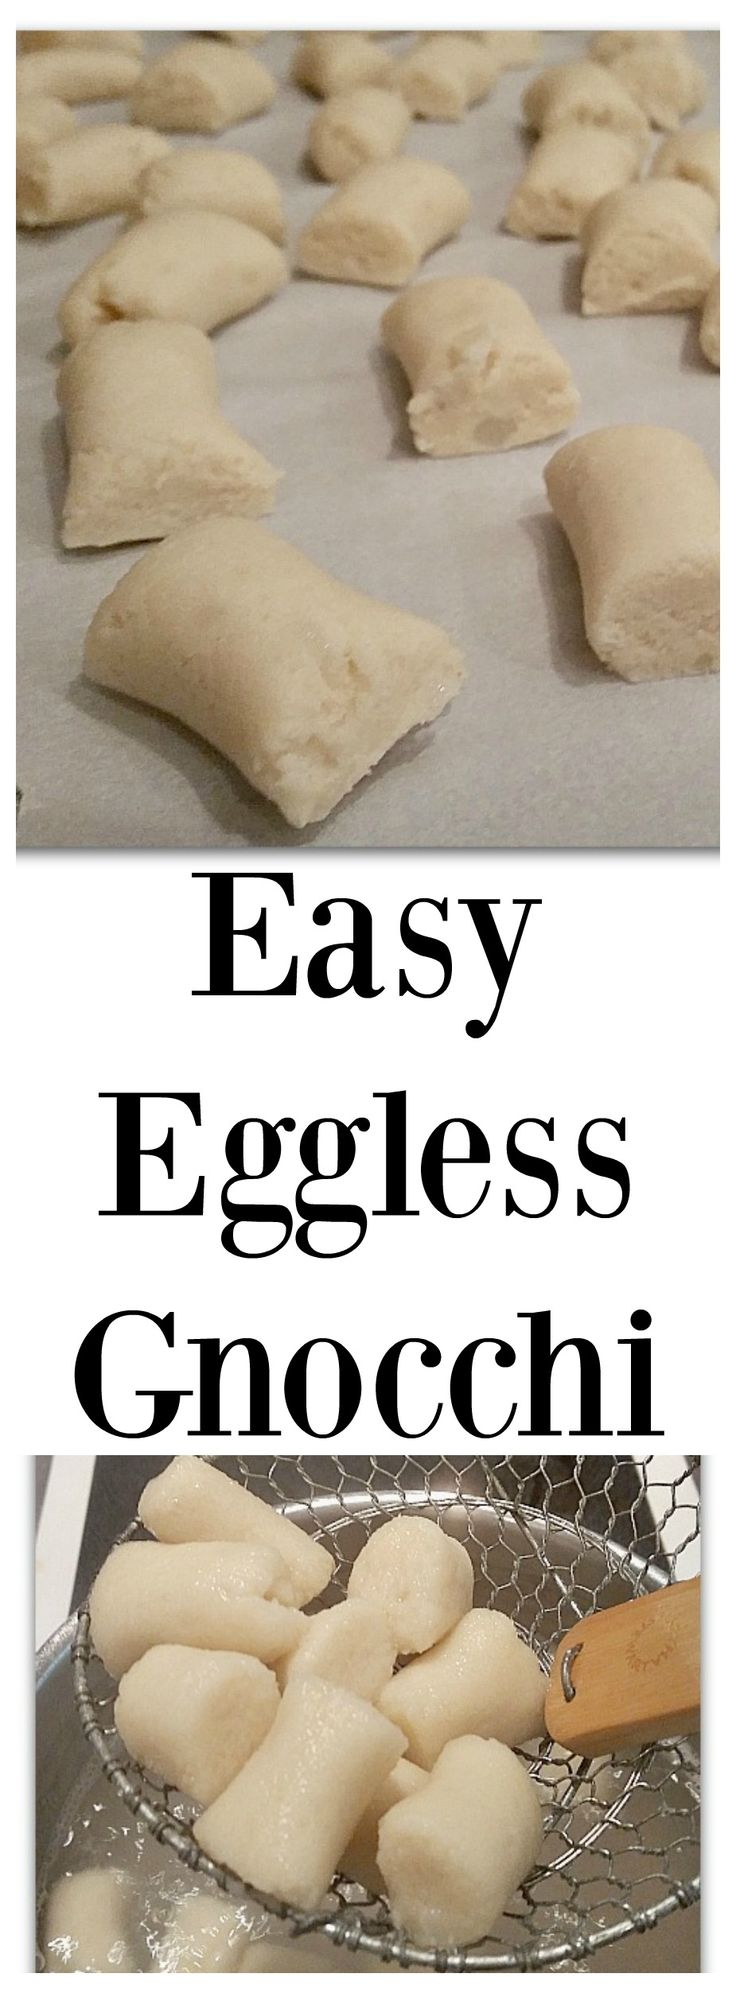 280 best my favorite continental food images on pinterest cooker easy eggless gnocchi for beginners forumfinder Choice Image